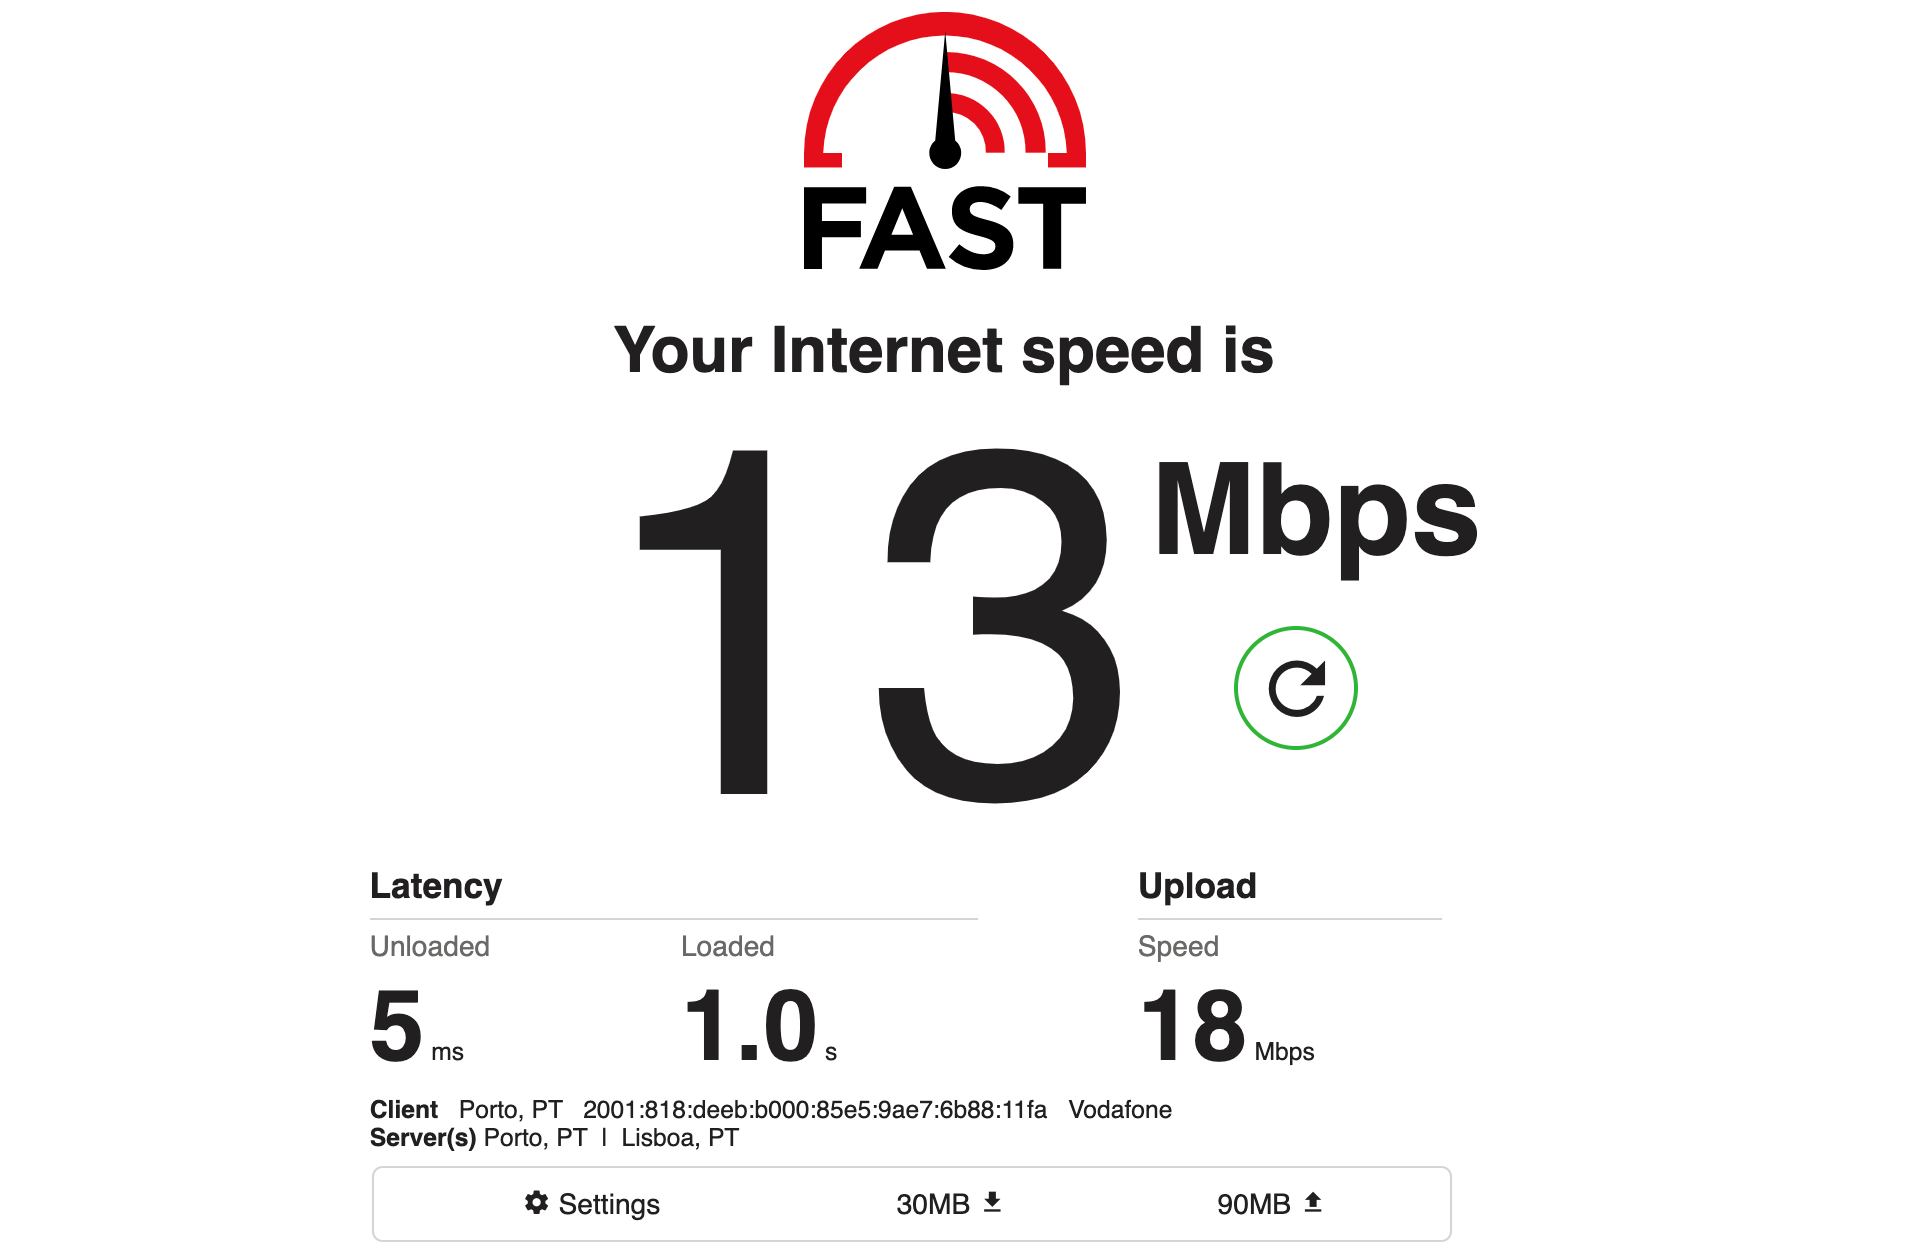 Check your Internet speed